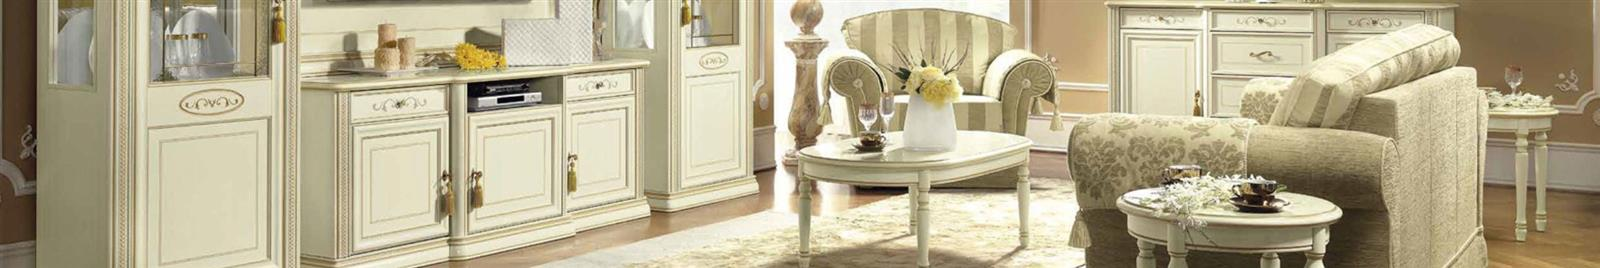 Siena Ivory - Camel Day Collection